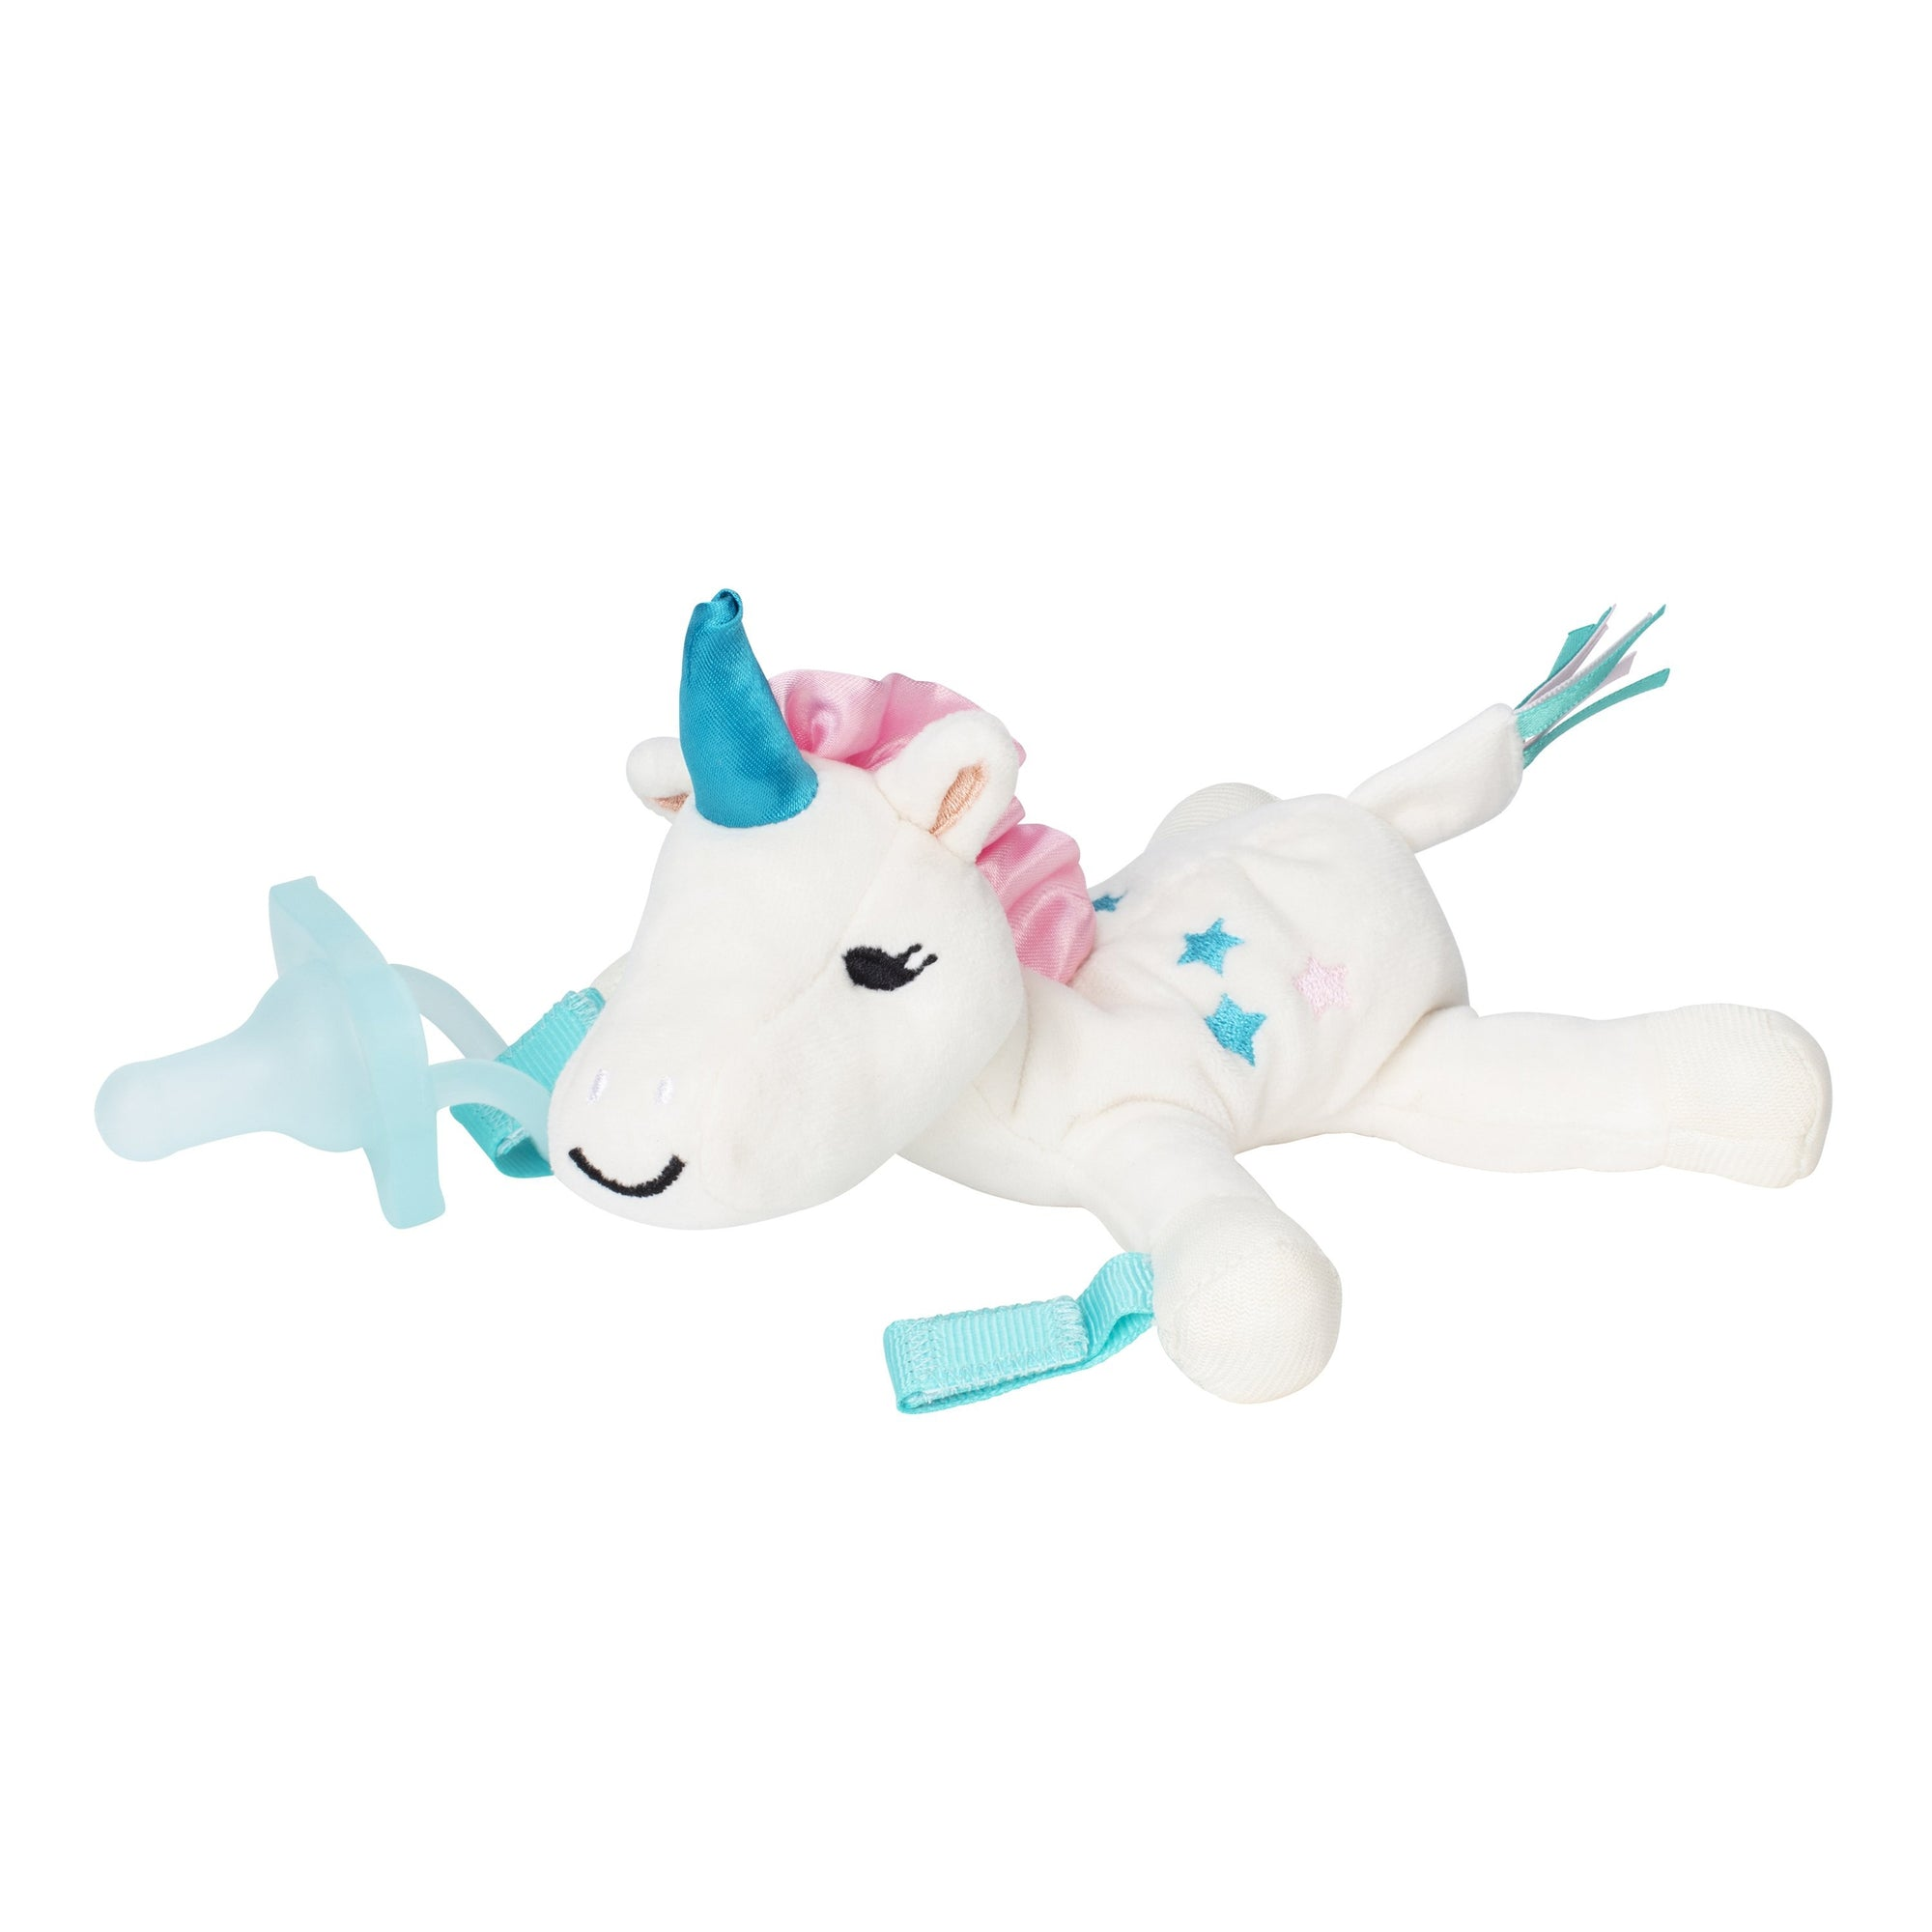 Dr. Brown's Unicorn Lovey w/Aqua One Piece Pacifier-Pacifier-Mother and Baby Shop Kenya's #1 Online Baby Shop